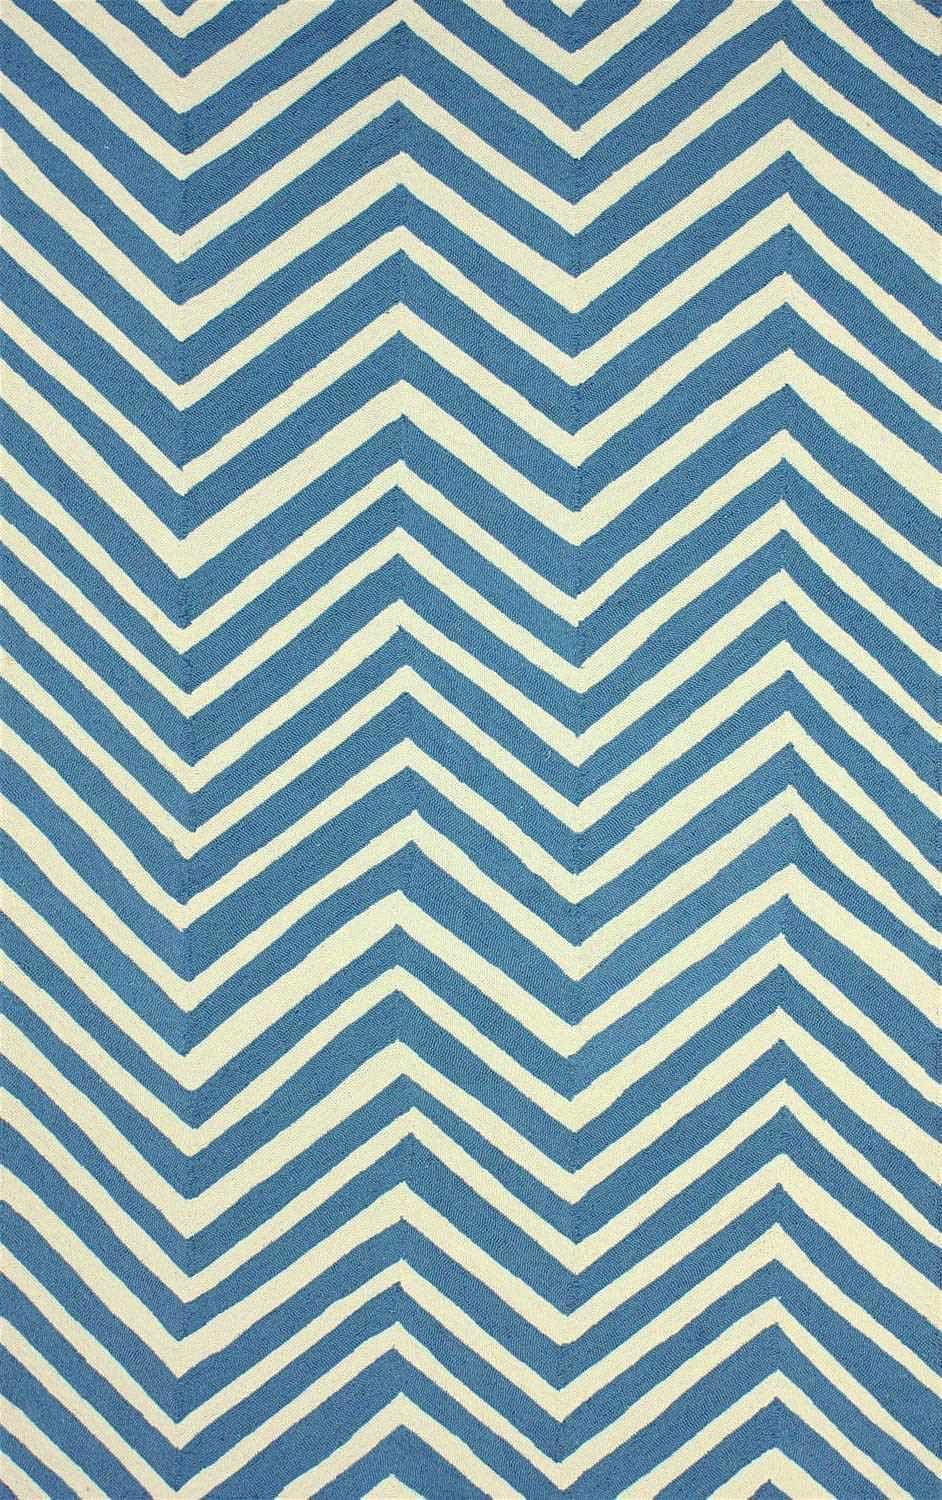 nuloom chevron indoor/outdoor area rug collection